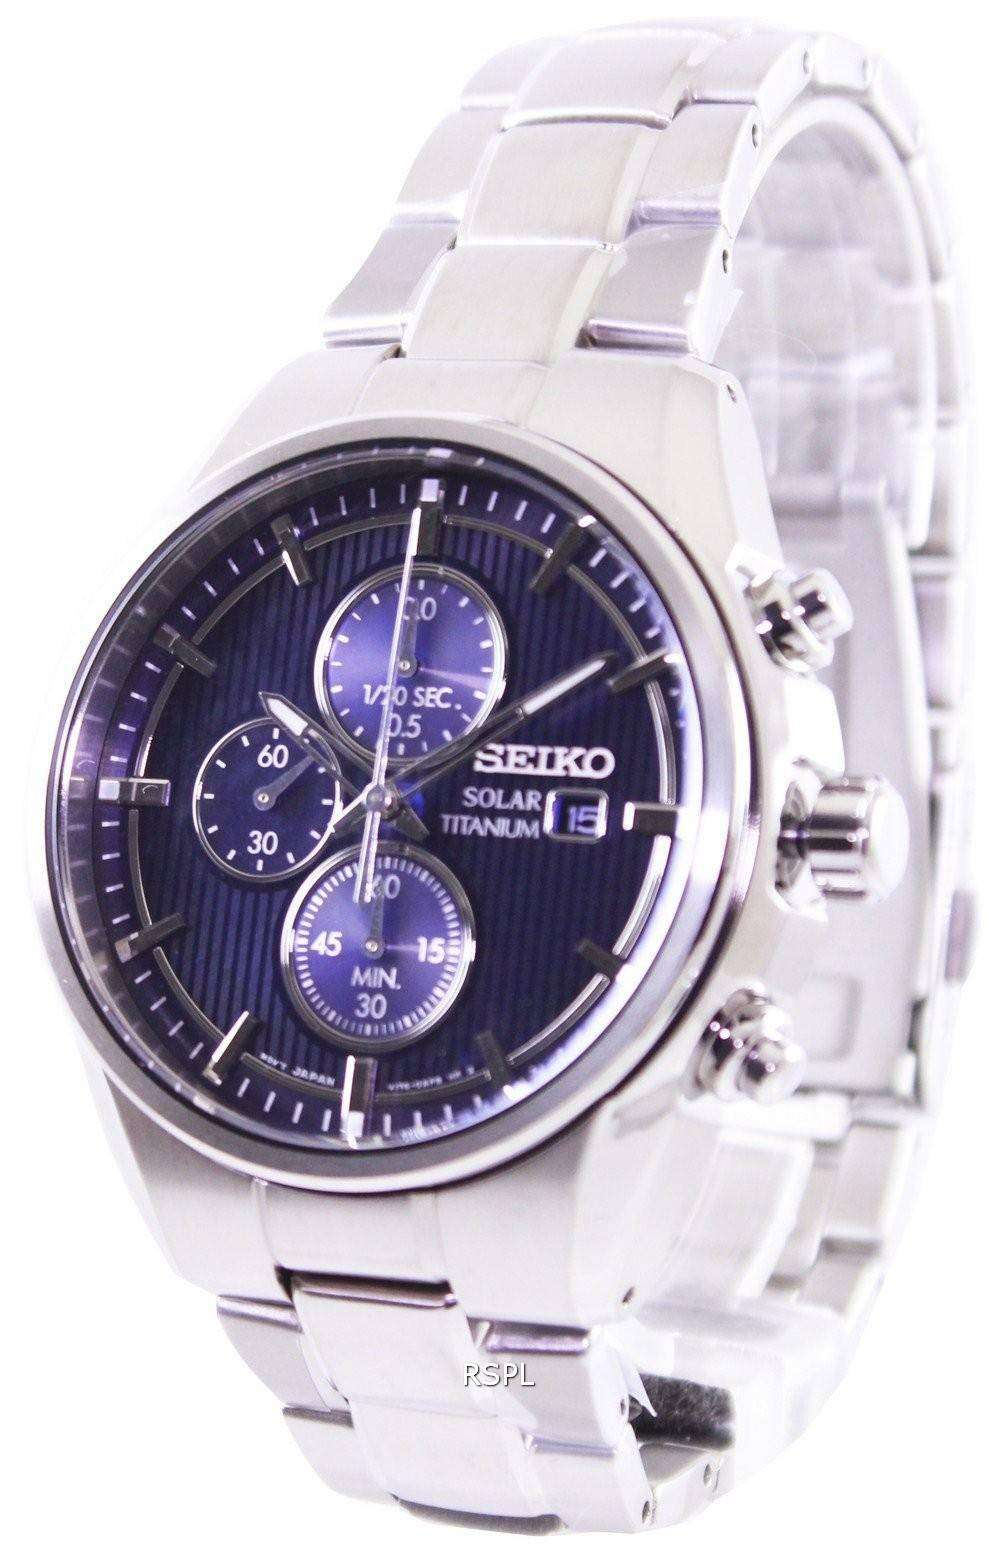 seiko solar titanium chronograph ssc365p1 ssc365p mens. Black Bedroom Furniture Sets. Home Design Ideas